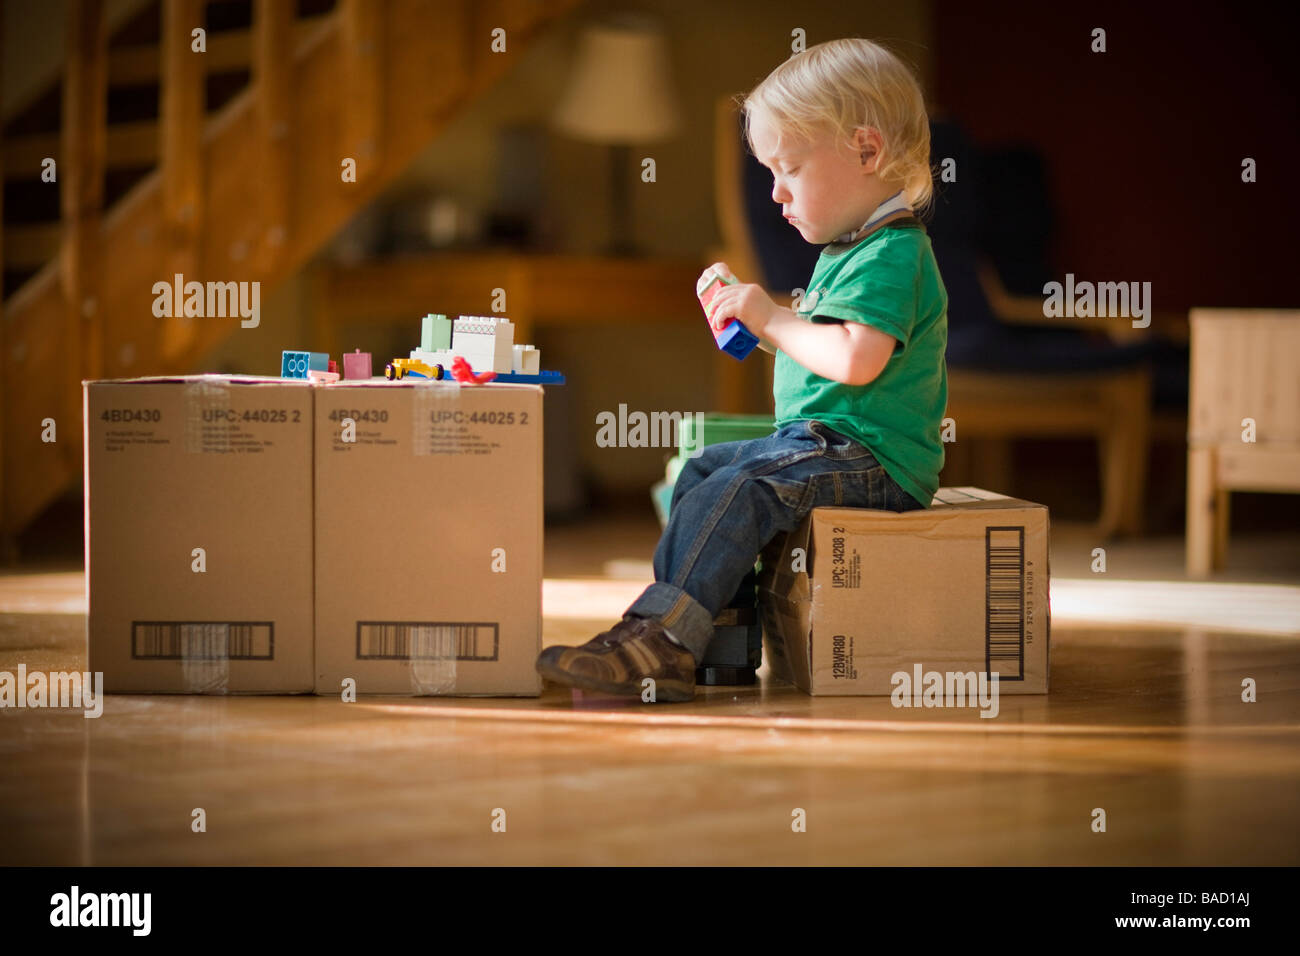 Toddler playing with toys on cardboard boxes - Stock Image